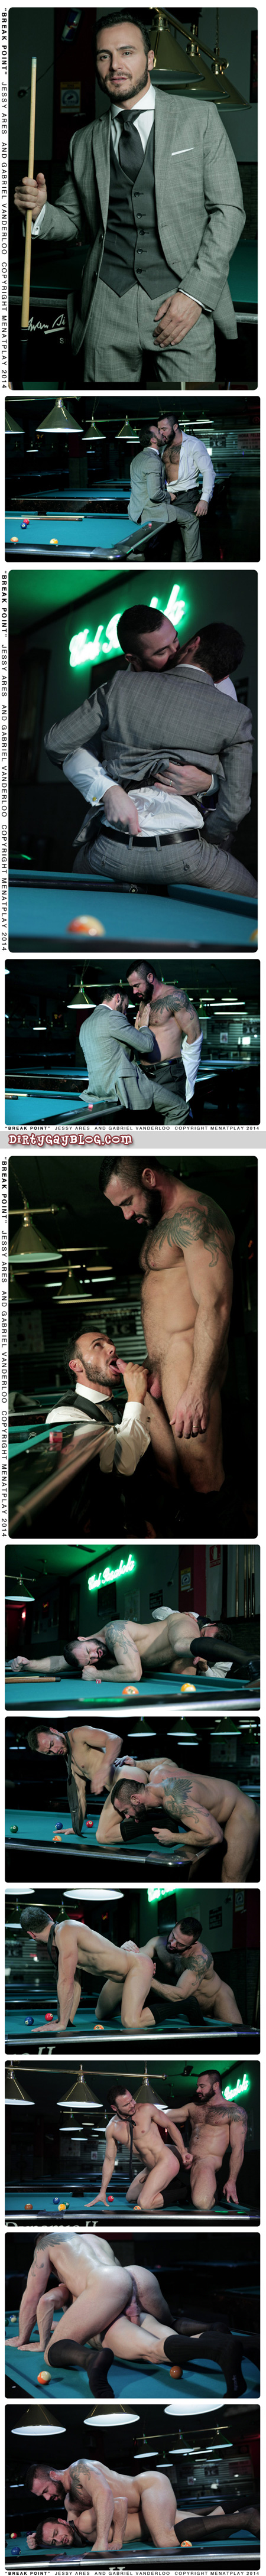 Hairy, muscular men in suits making out after a game of pool.